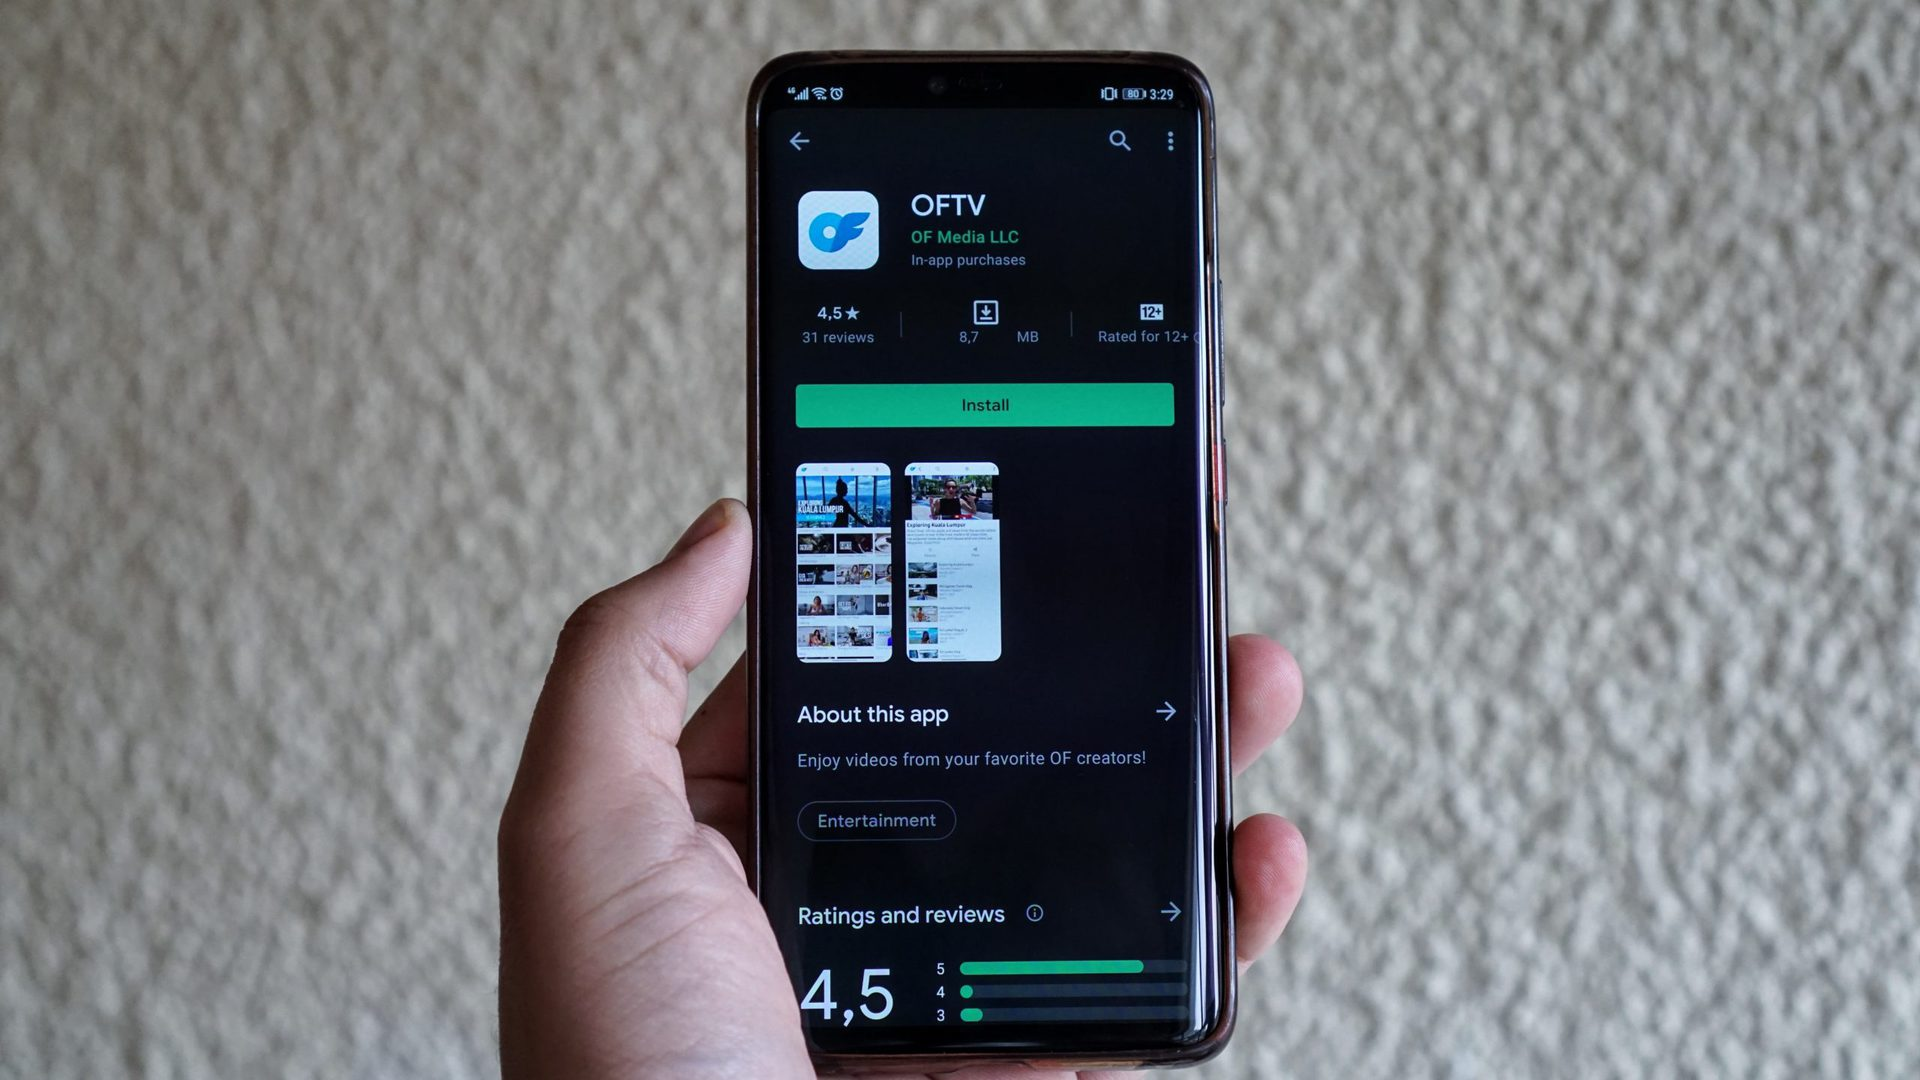 The OnlyFans OFTV app listing.